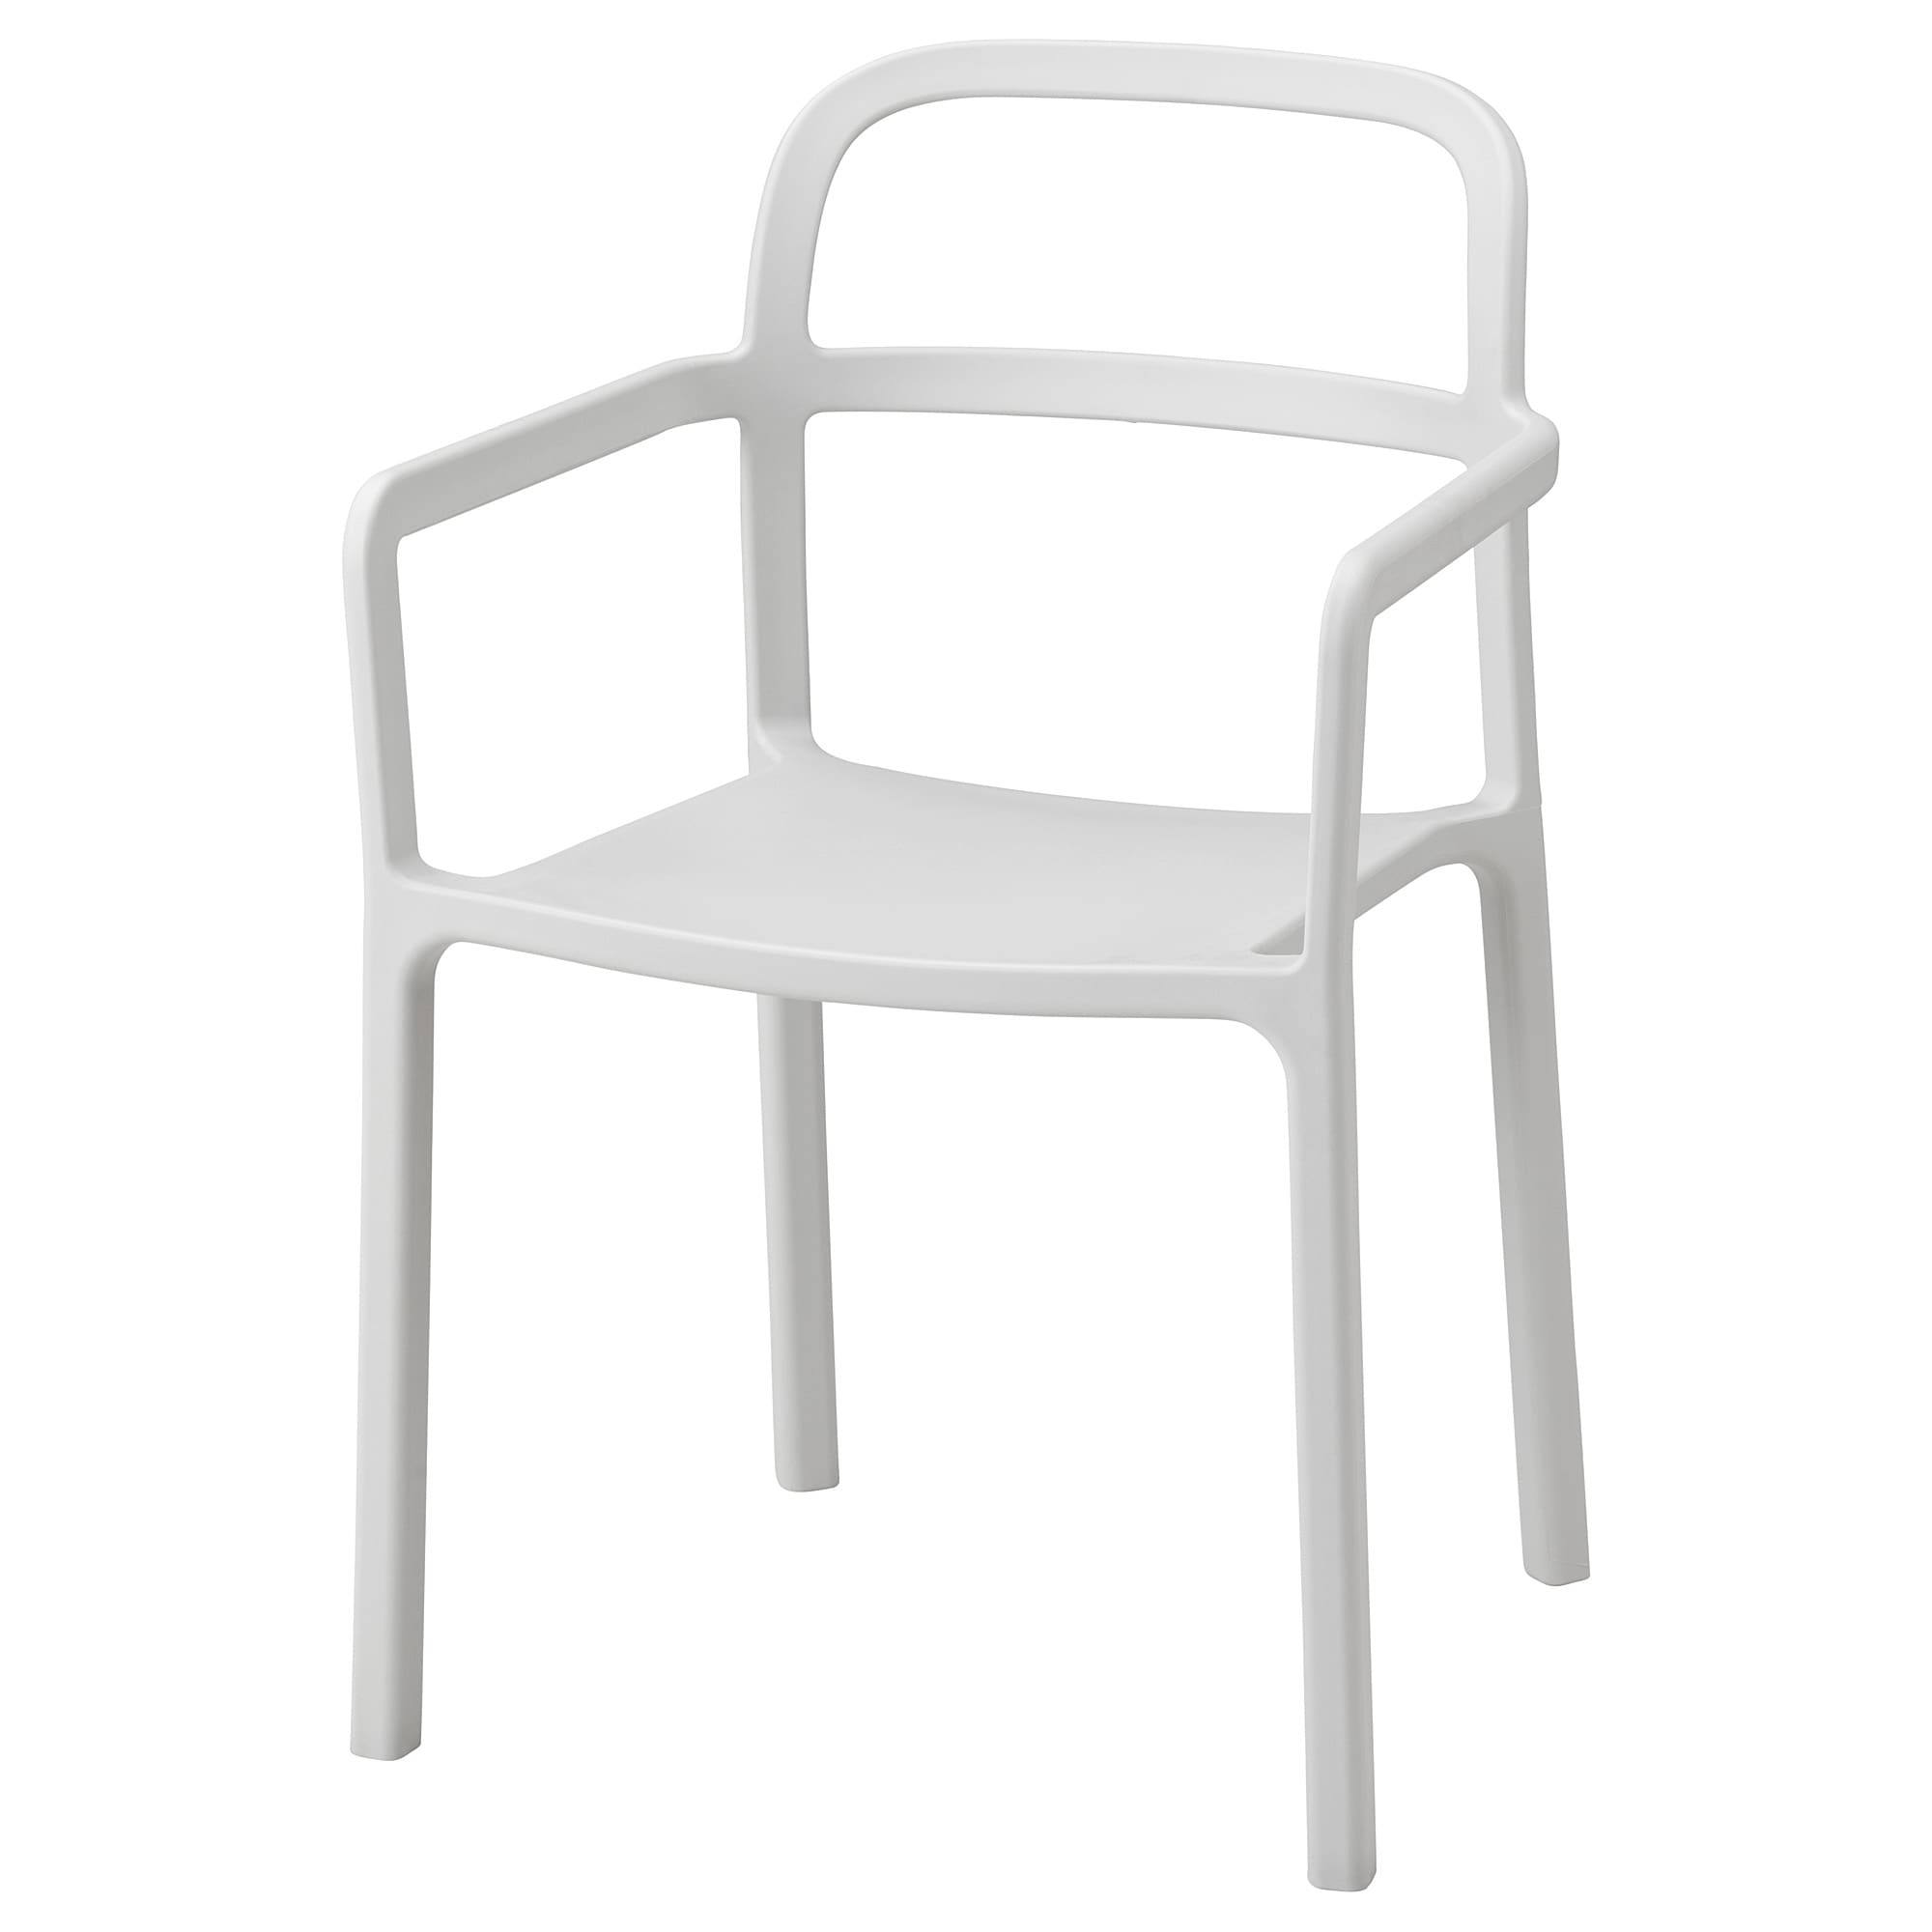 Ypperlig Ikea Outdoor Chairs Komnit Store